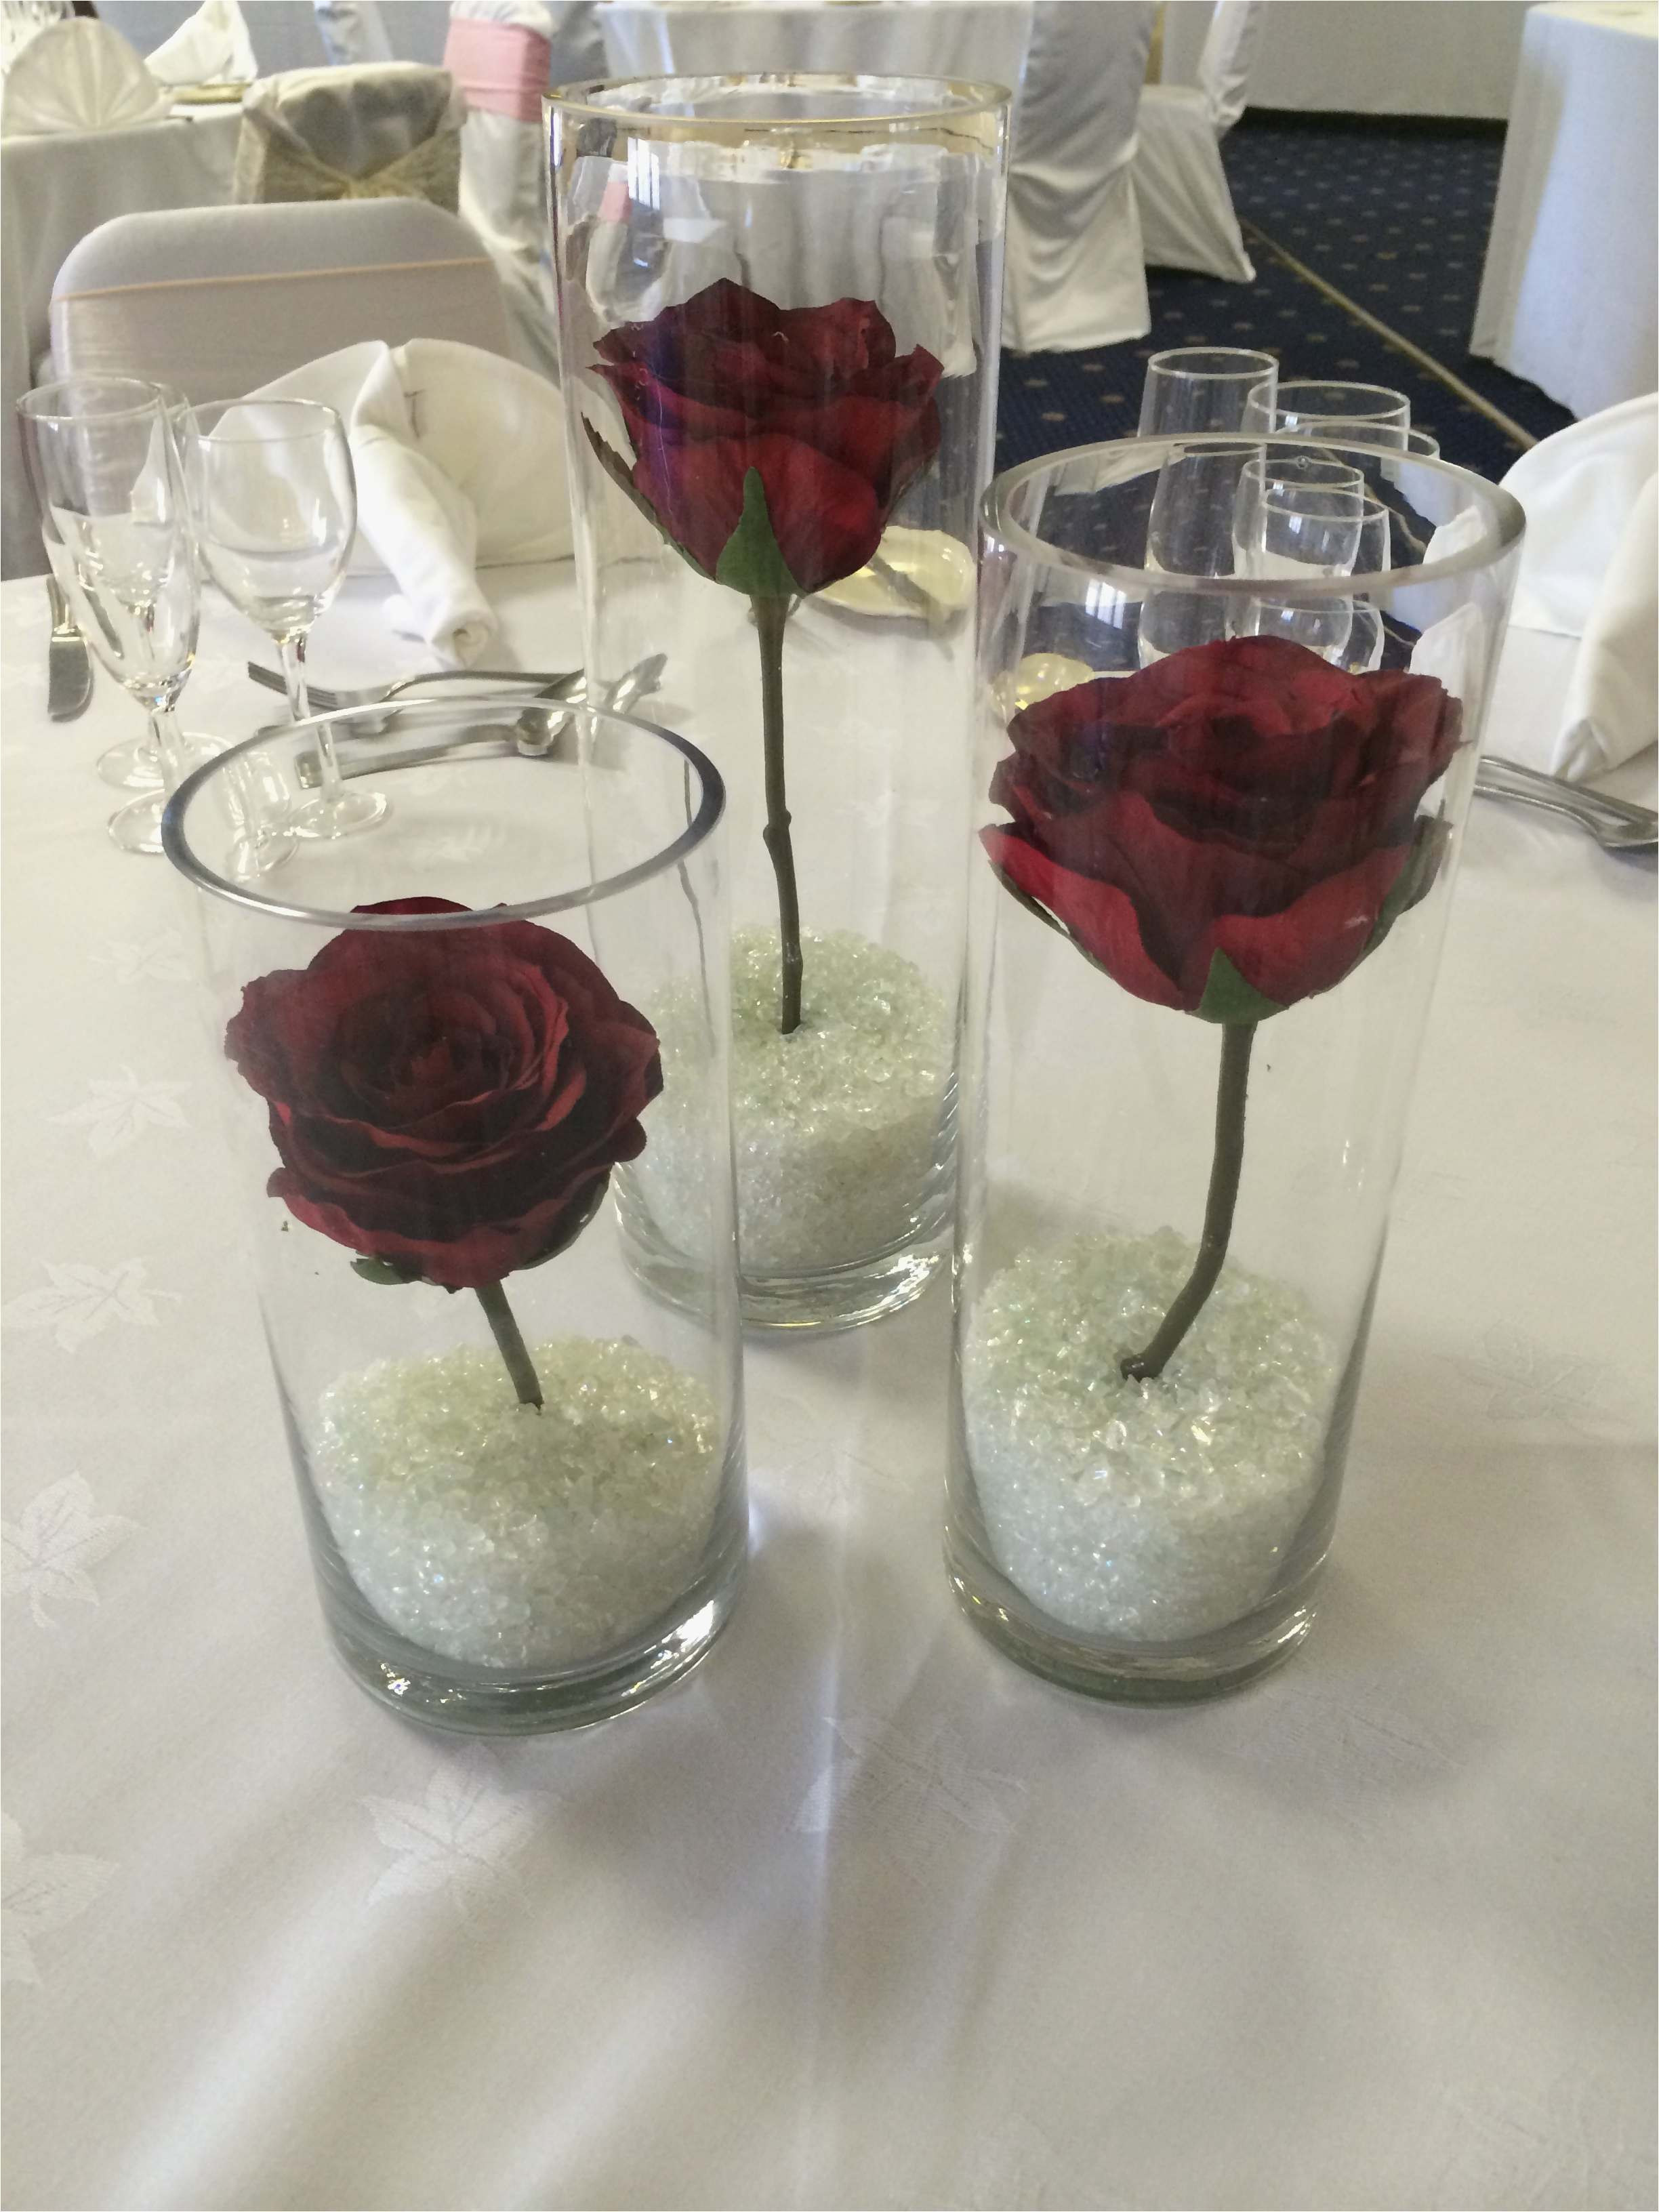 Tall Elegant Glass Vases Of Wedding Flower Centerpieces Style 30 Awesome Vintage Glass Vases for Inside Wedding Flower Centerpieces Awesome Charming Table Vase Decorations 20 Tall Centerpiece Ideas Vases Fresh